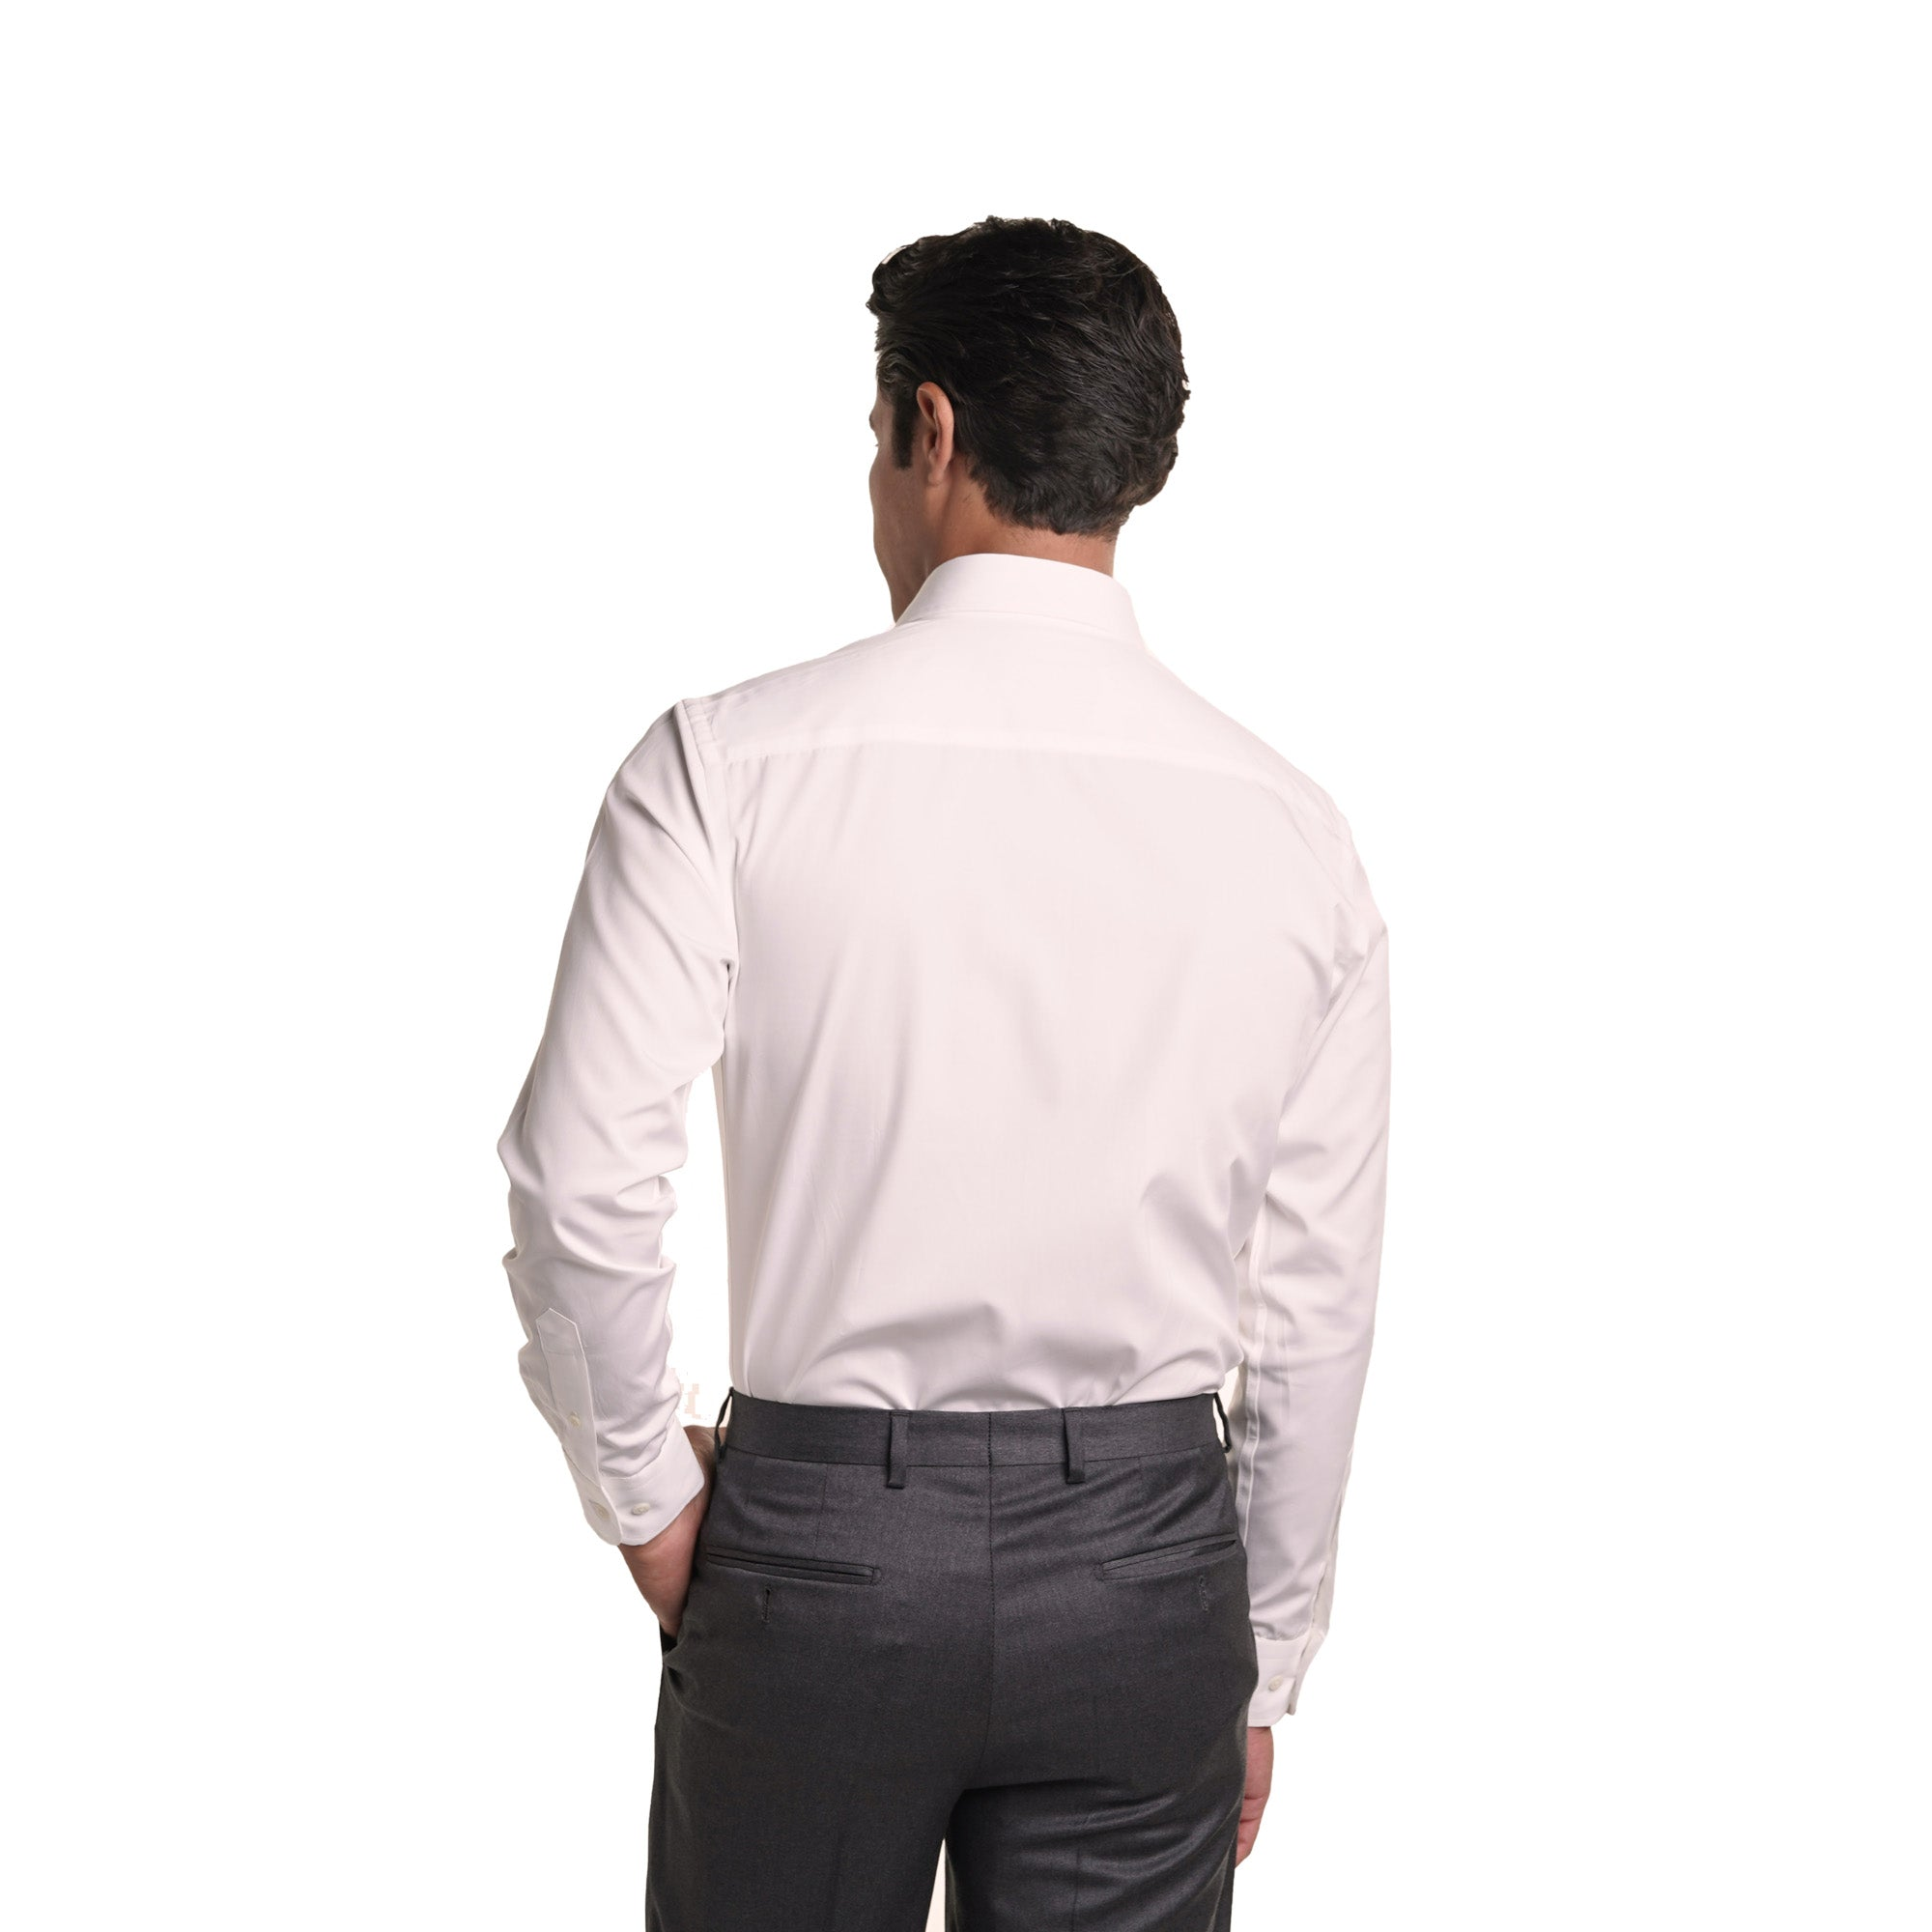 Premium Dress Shirts Slim Fit - White